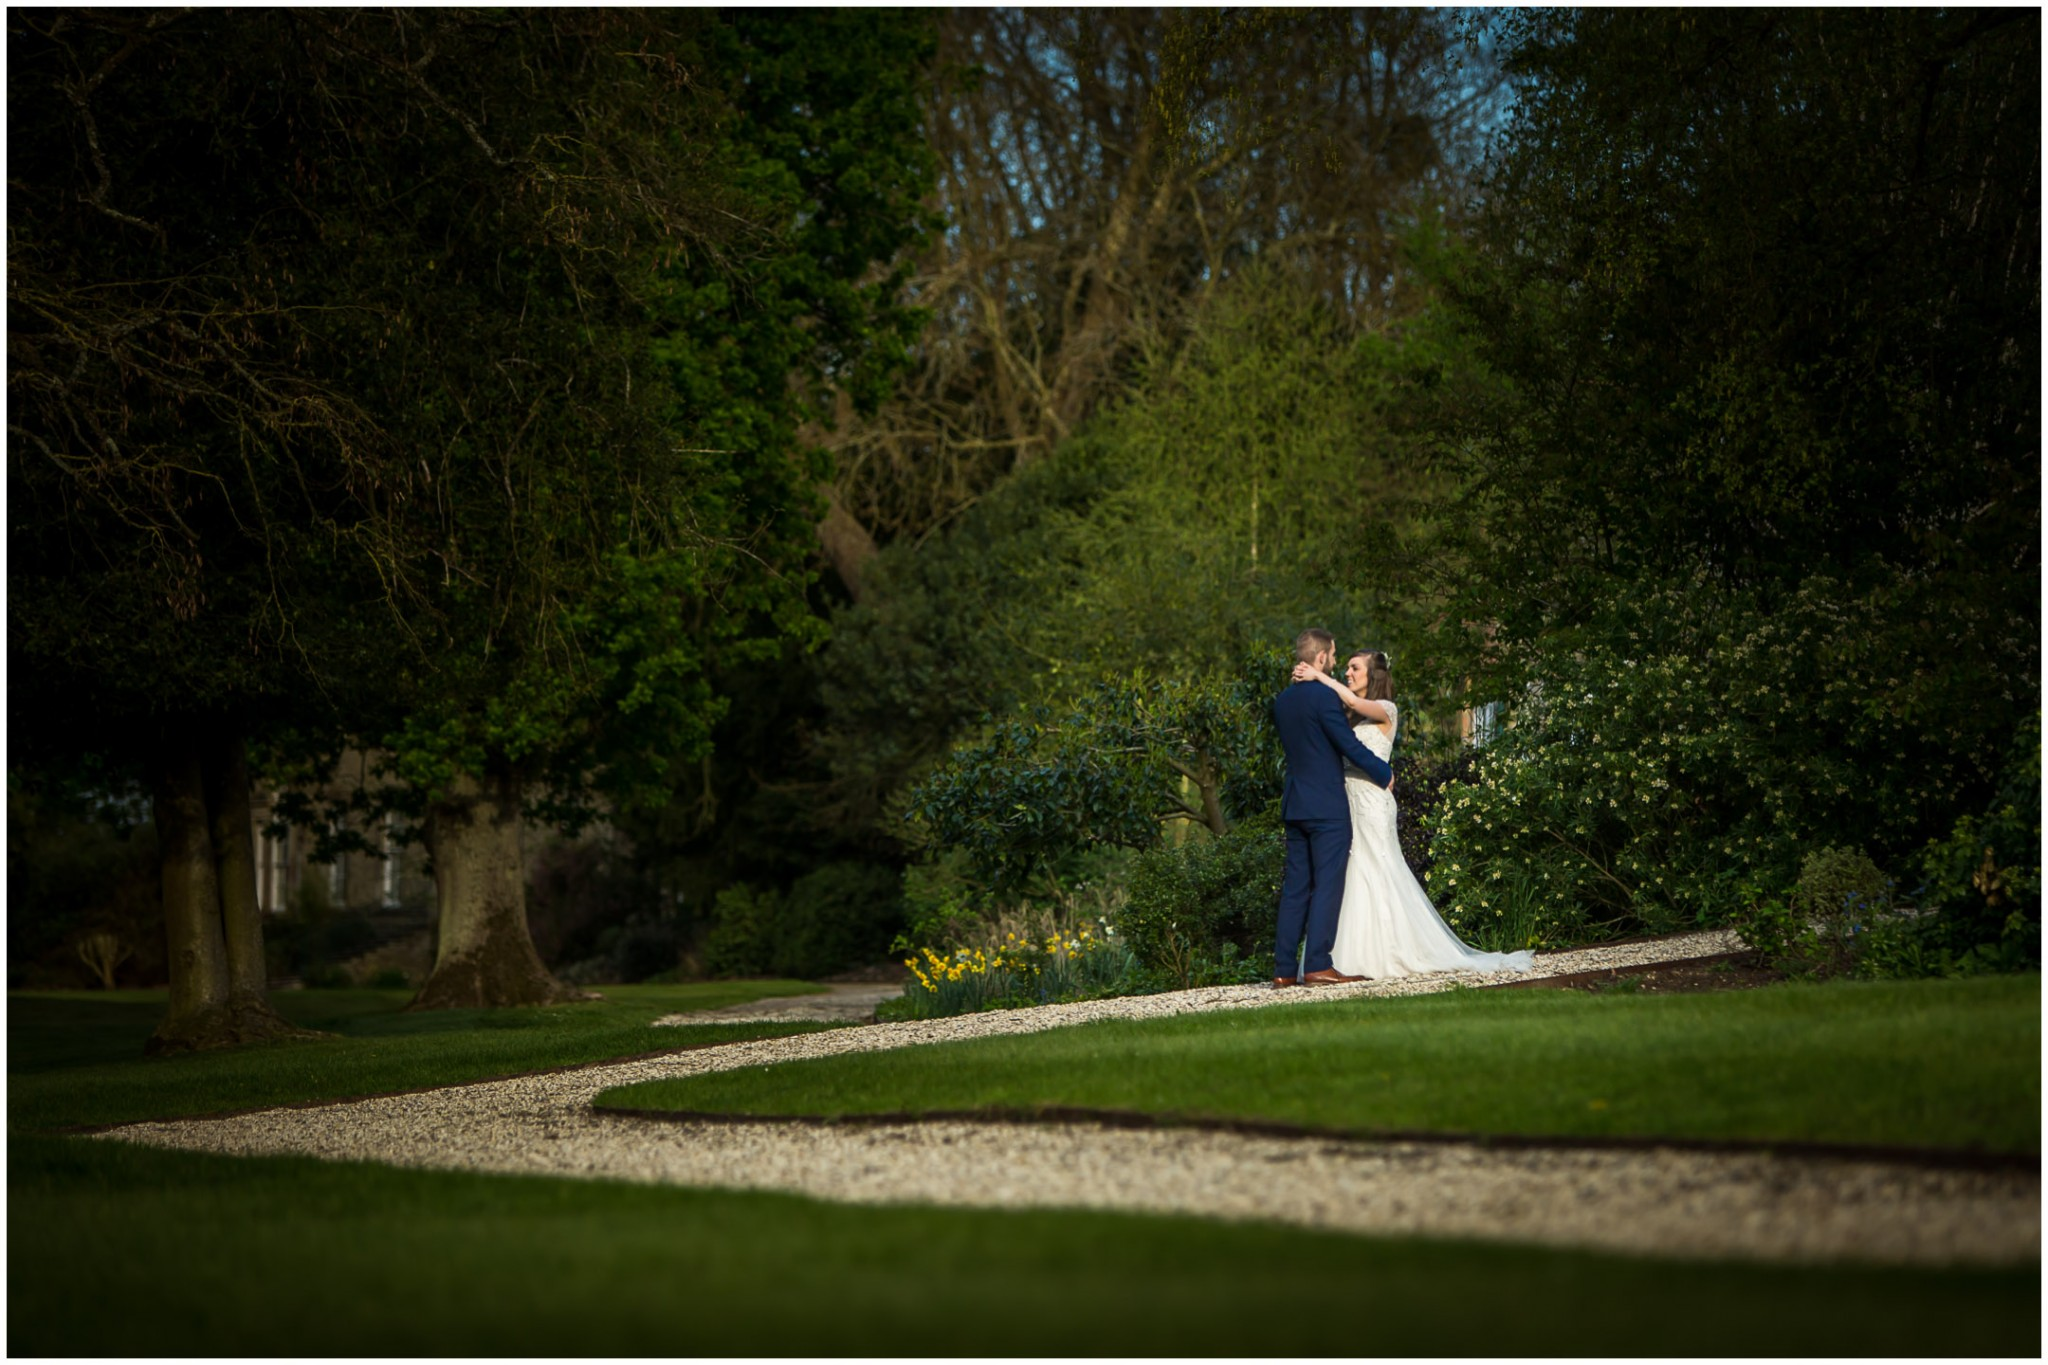 Wasing Park Wedding Photography Bride & Groom in the gardens